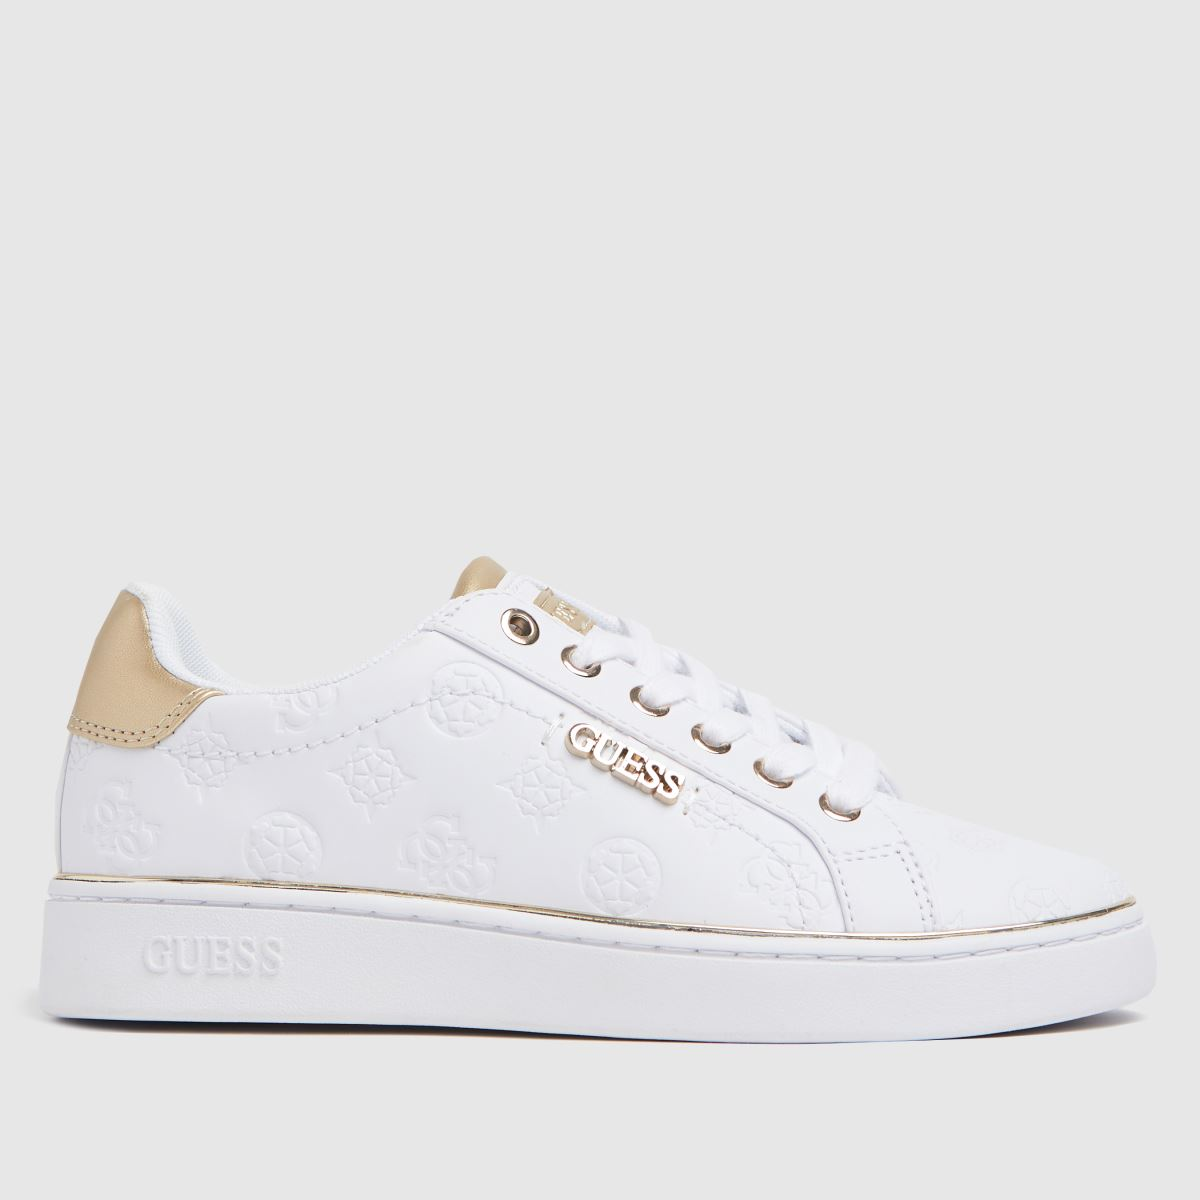 GUESS White & Gold Beckie Trainers